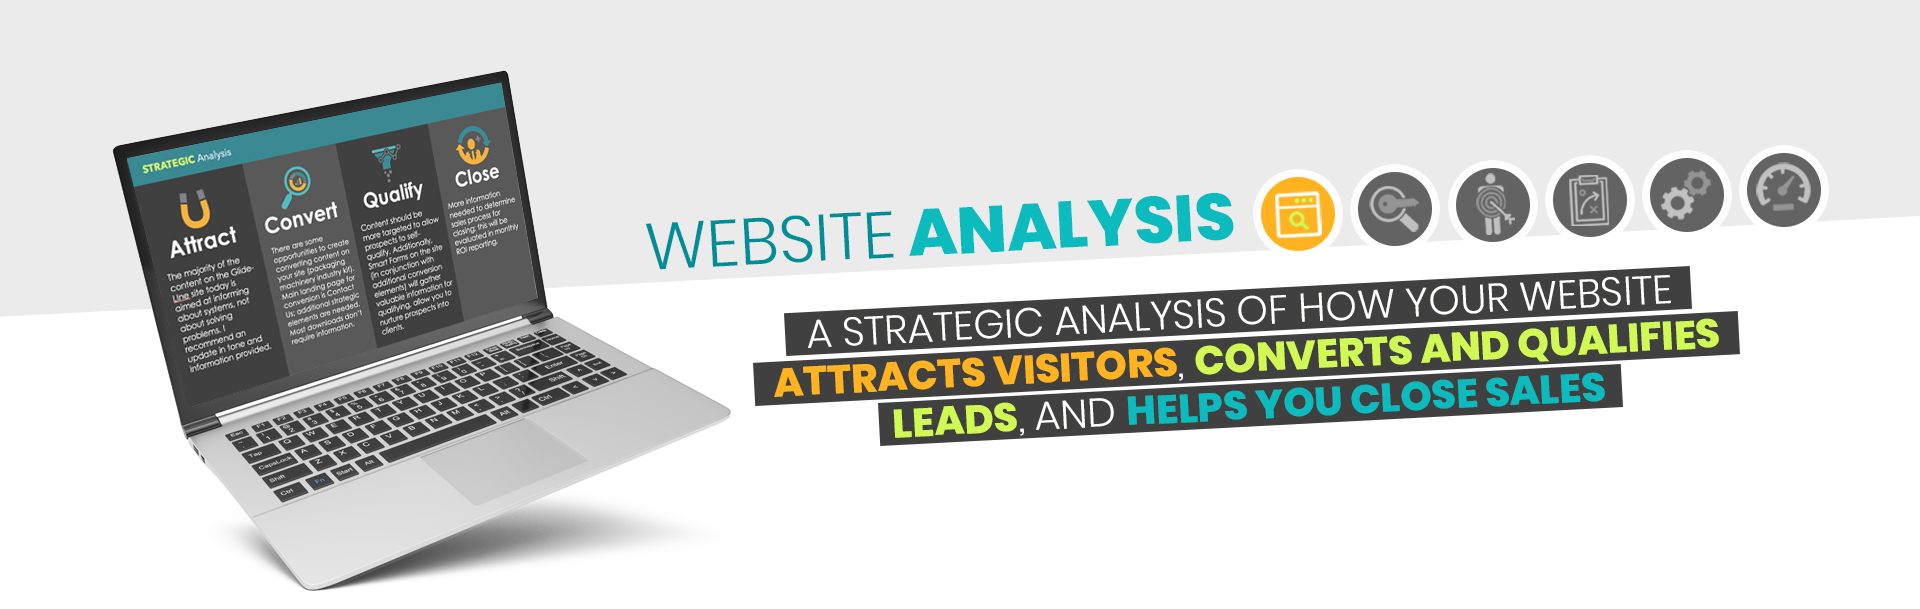 Website Analysis - Strategic Analysis